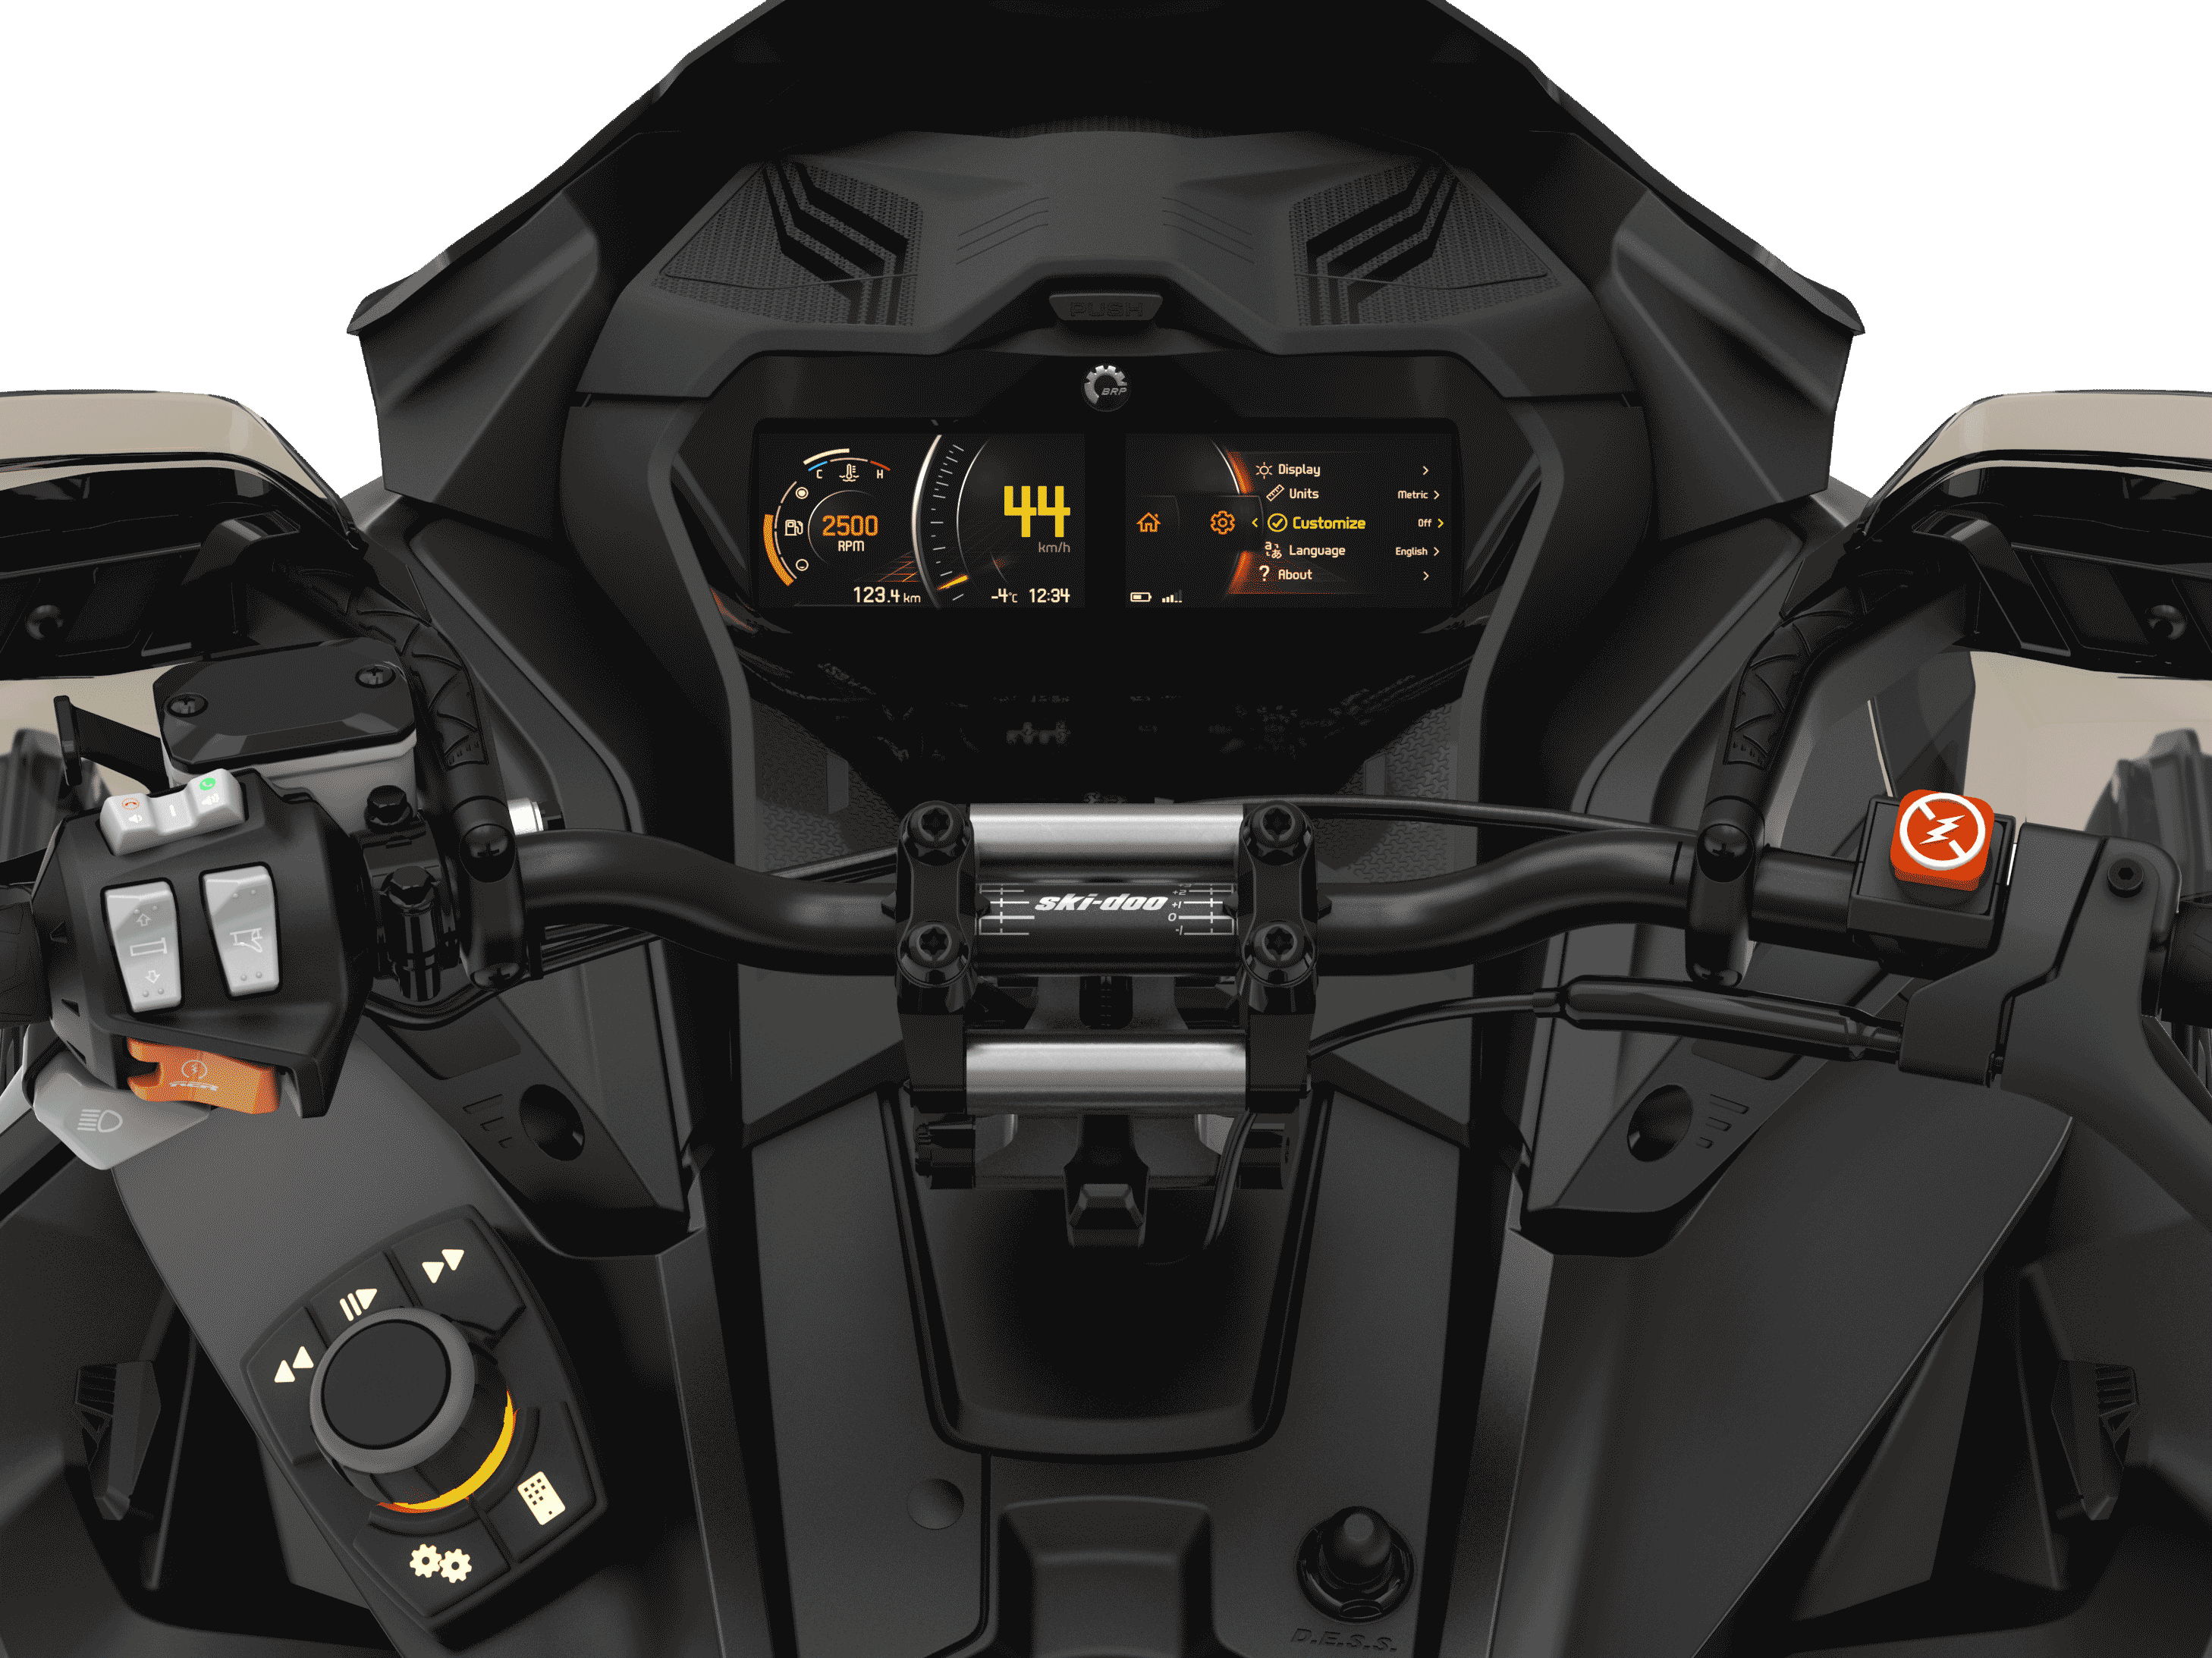 Ski-Doo Digital Display 7.8-inch